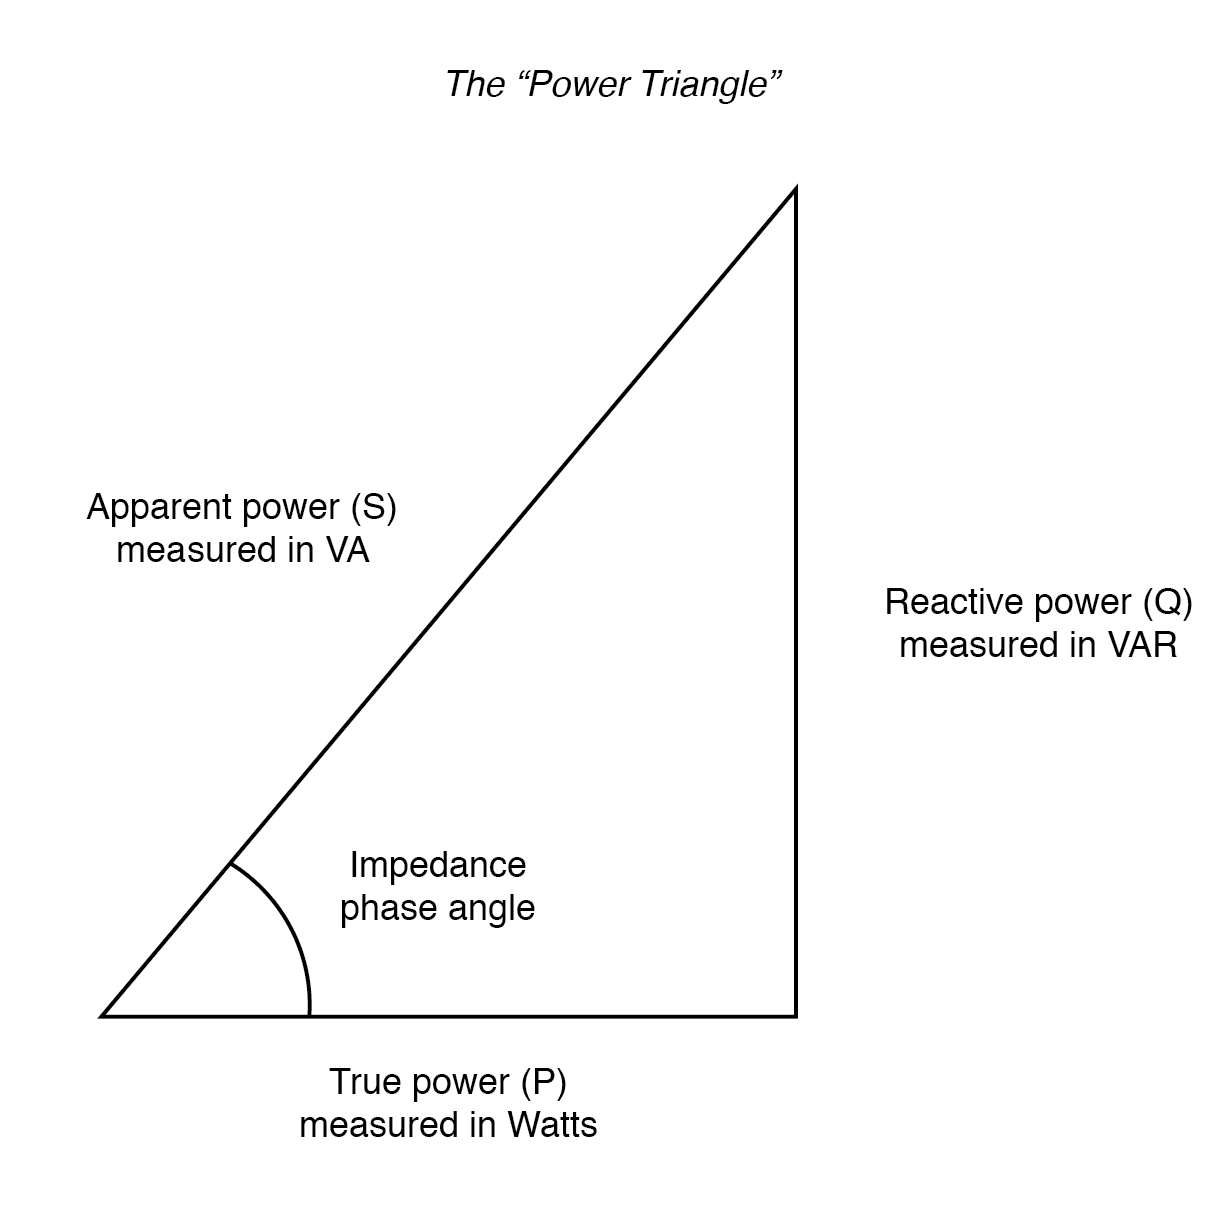 Power triangle relating appearant power to true power and reactive power.